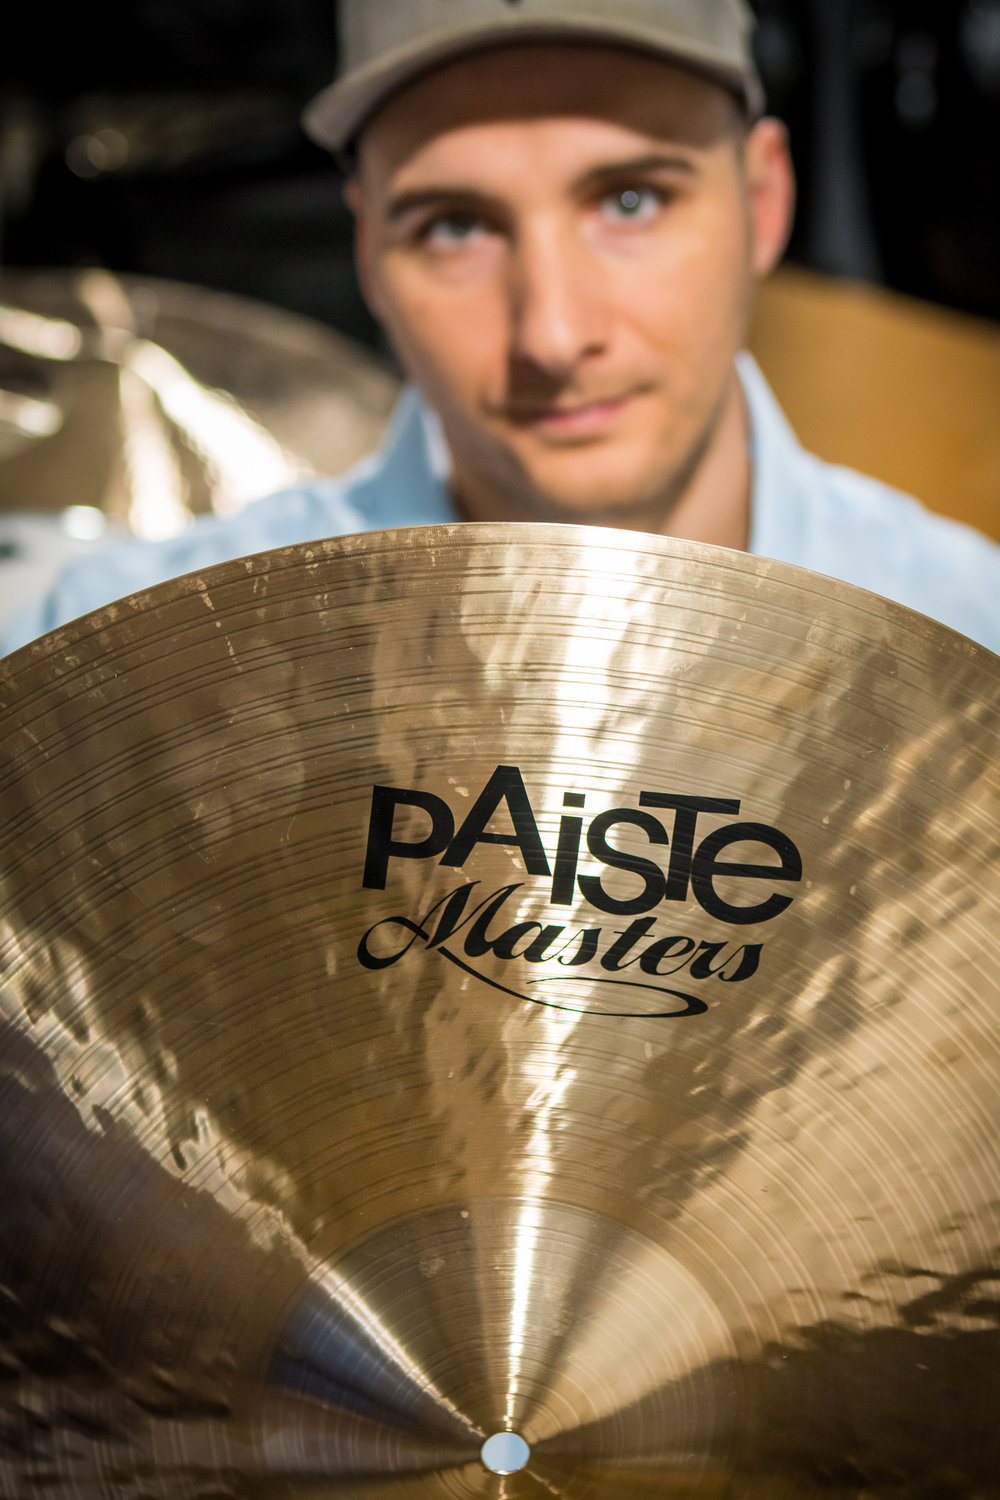 Philip is a proud endorser of Paiste Cymbals and member of their Artist Roster.